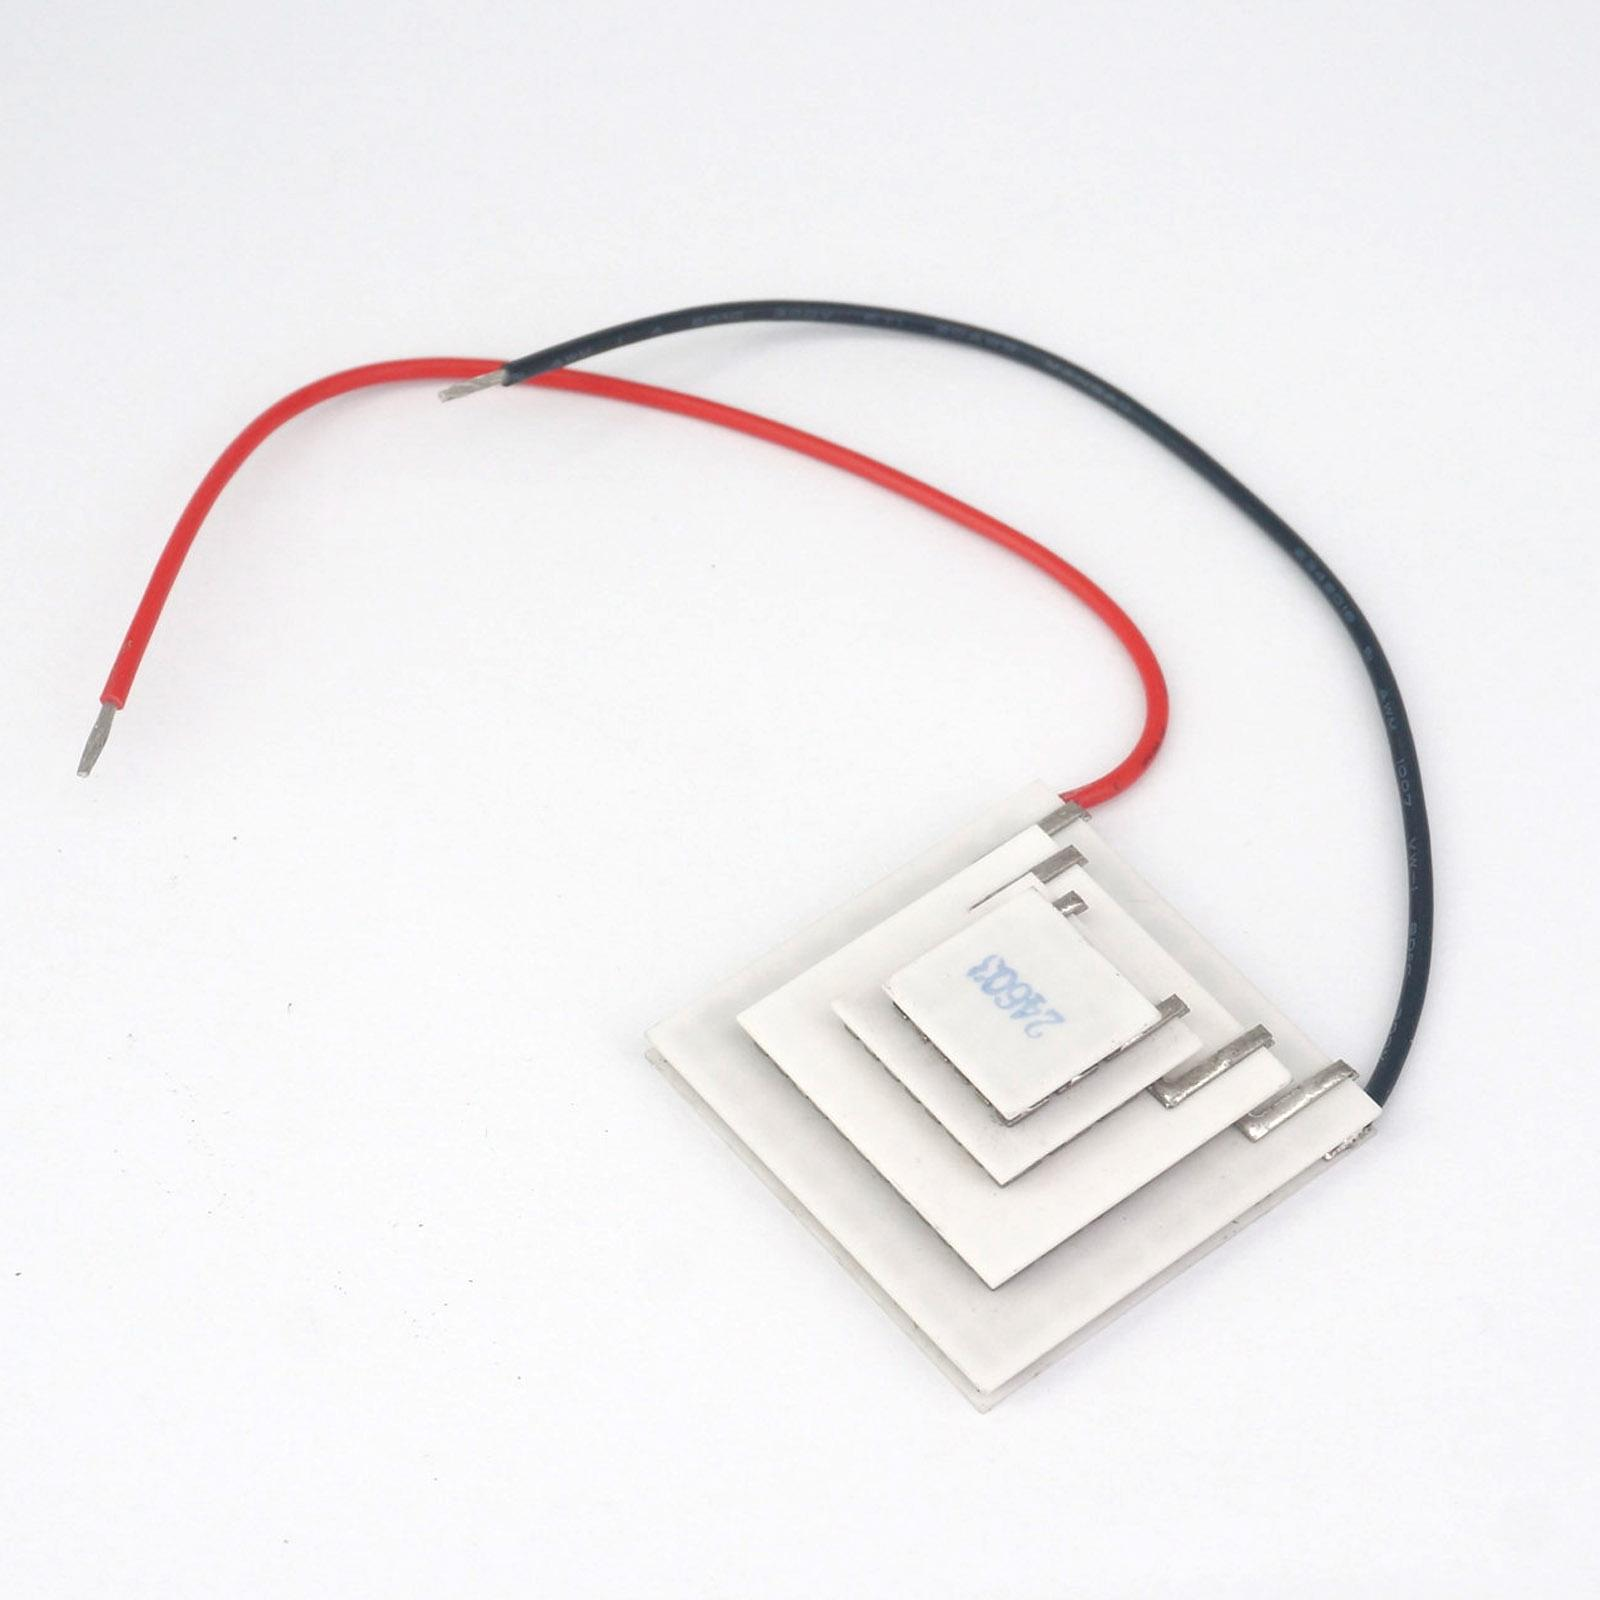 TEC4-24603 Heatsink Thermoelectric Cooler Peltier Cooling Plate Four Layers Refrigeration Module